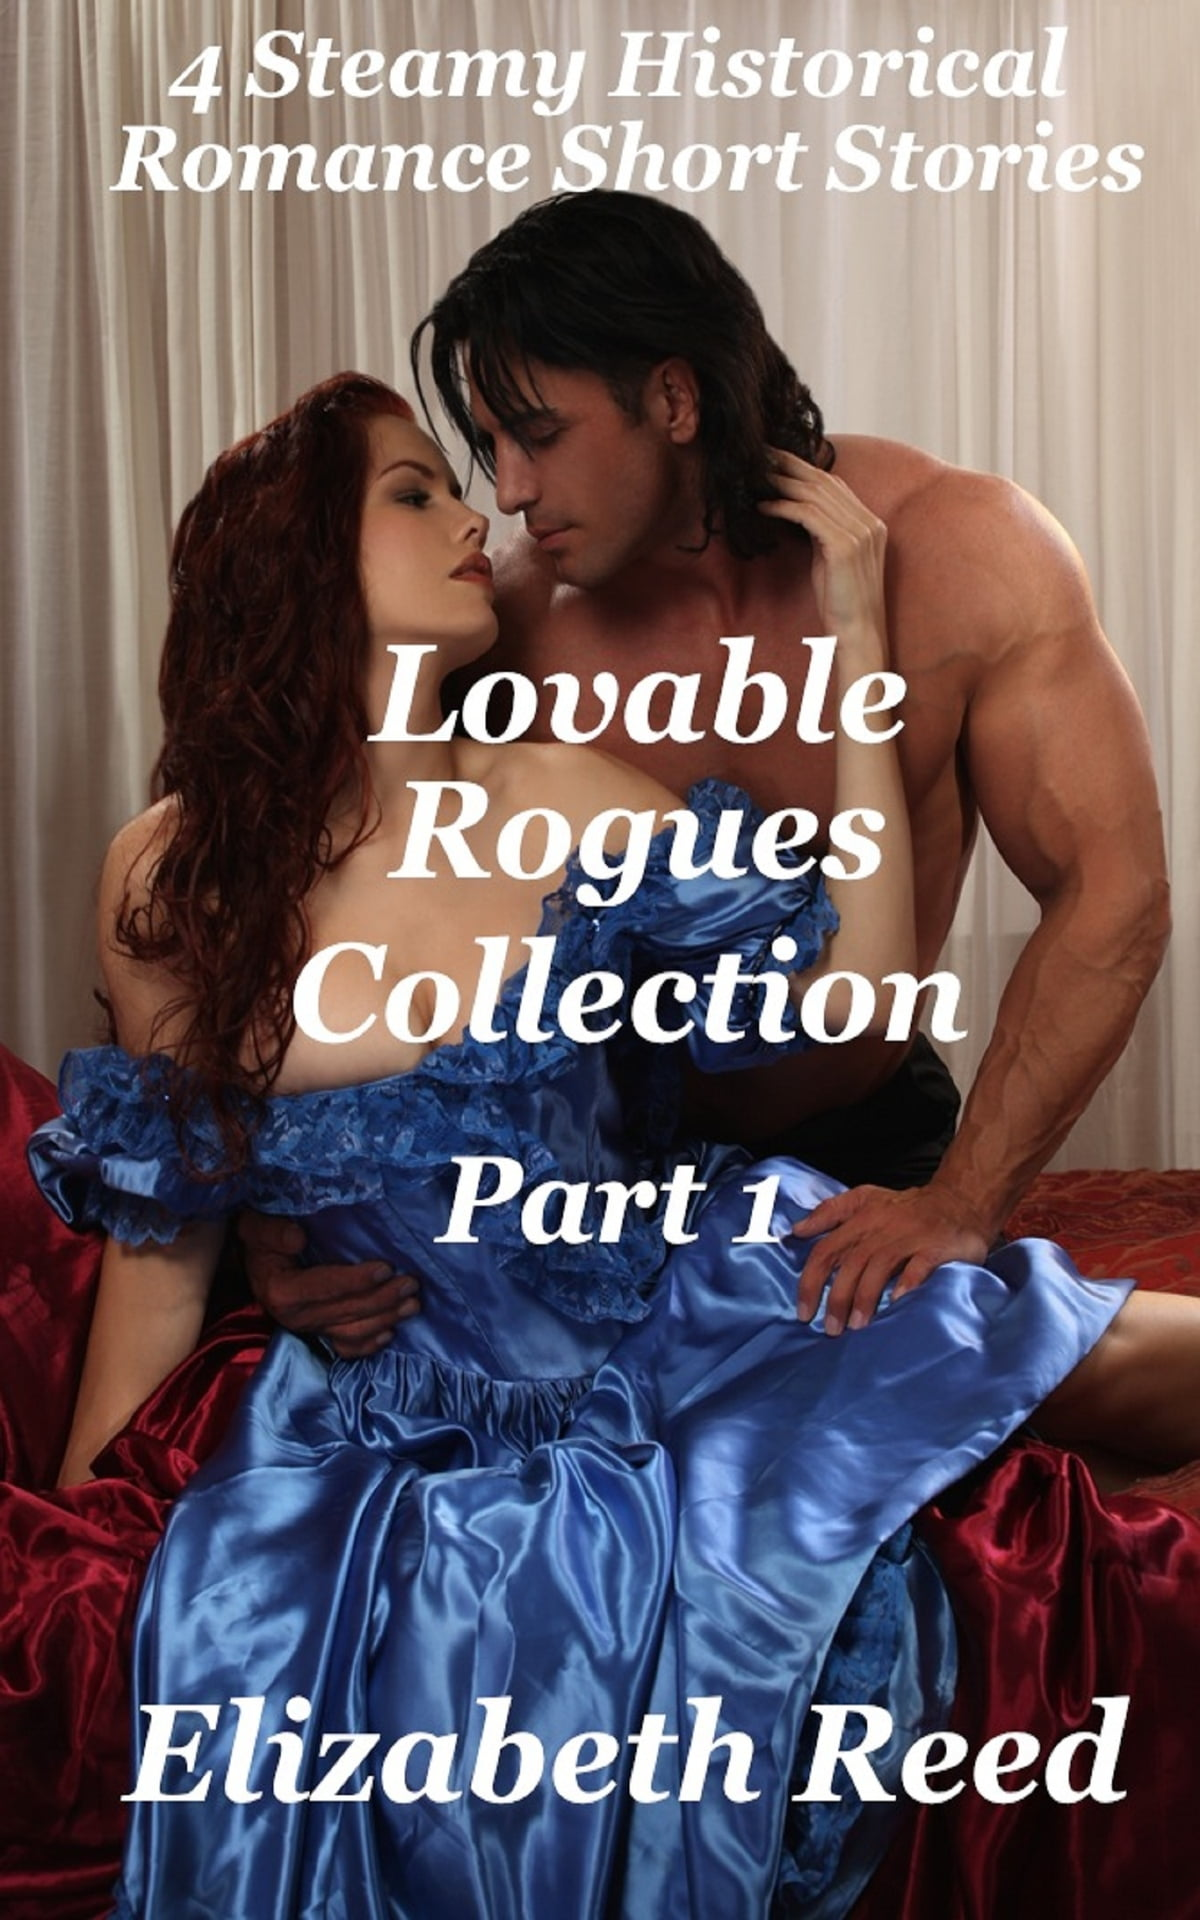 Lovable Rogues Collection Part 1: 4 Historical Steamy Romance Short Stories  eBook by Elizabeth Reed - 9781311533364 | Rakuten Kobo